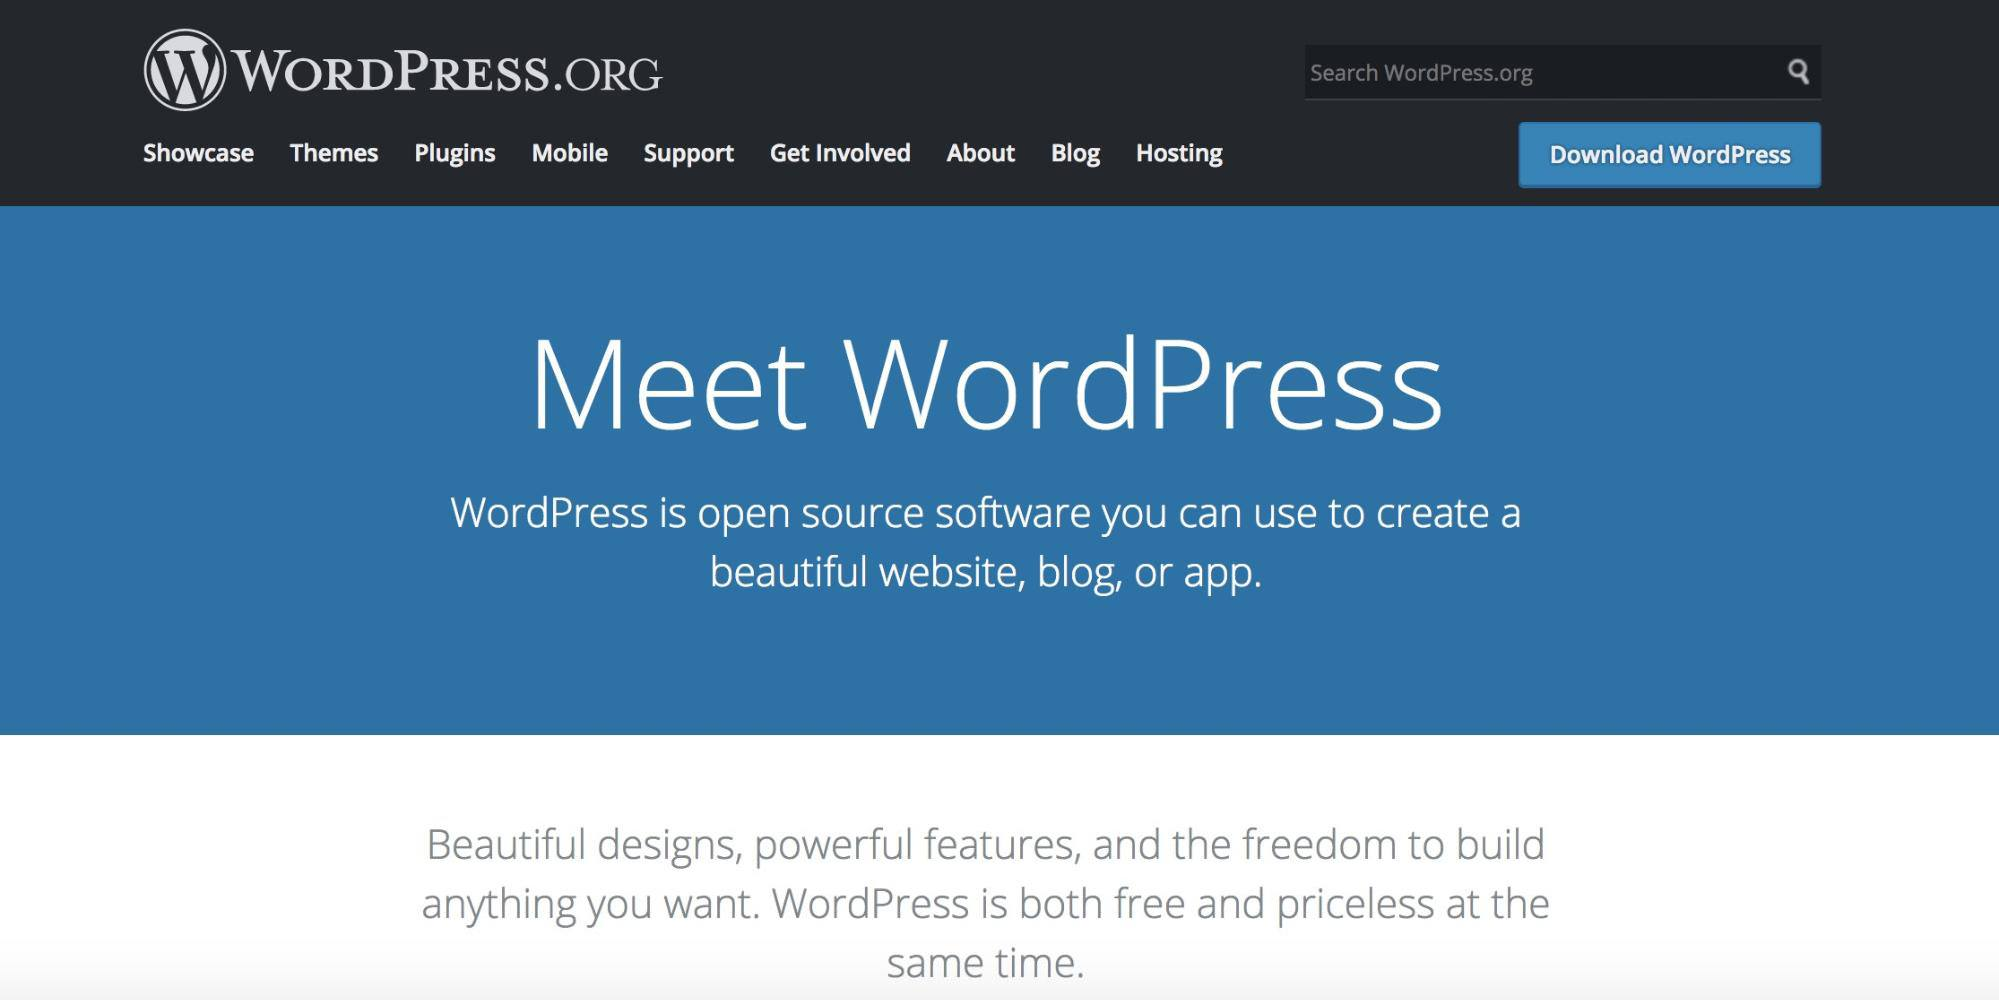 WordPress.org Self Hosted Blogging Platform